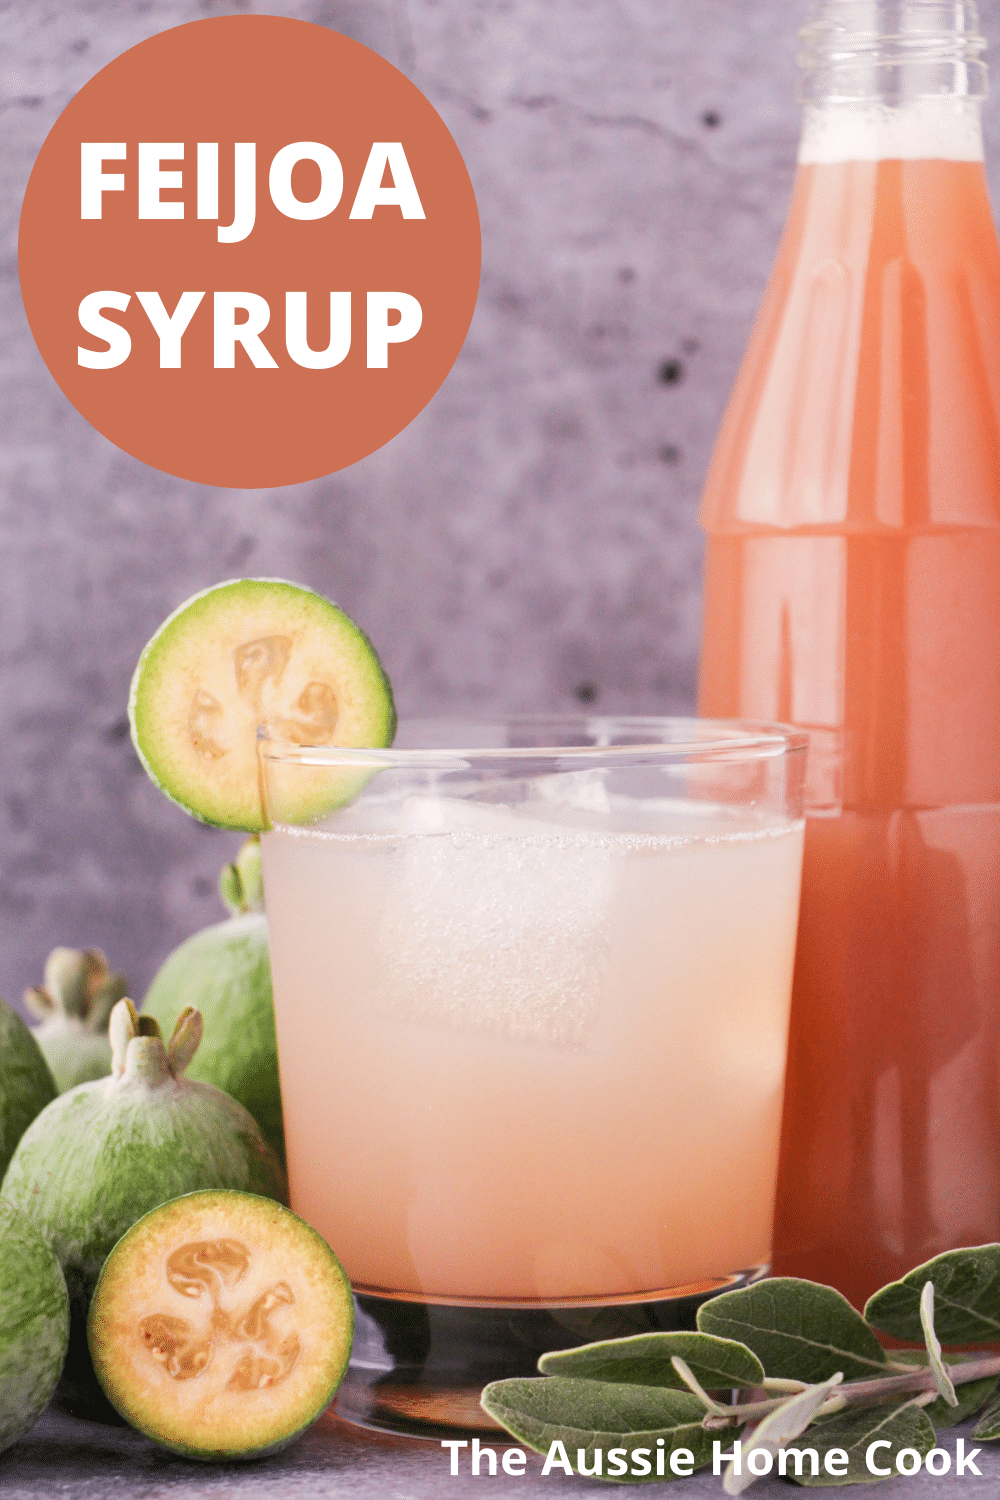 Glass of made up feijoa syrup with ice and fresh feijoa garnish, with bottle of feijoa syrup and fresh feijoas and leaves, with text overlay, feijoa syrup and The Aussie Home Cook.